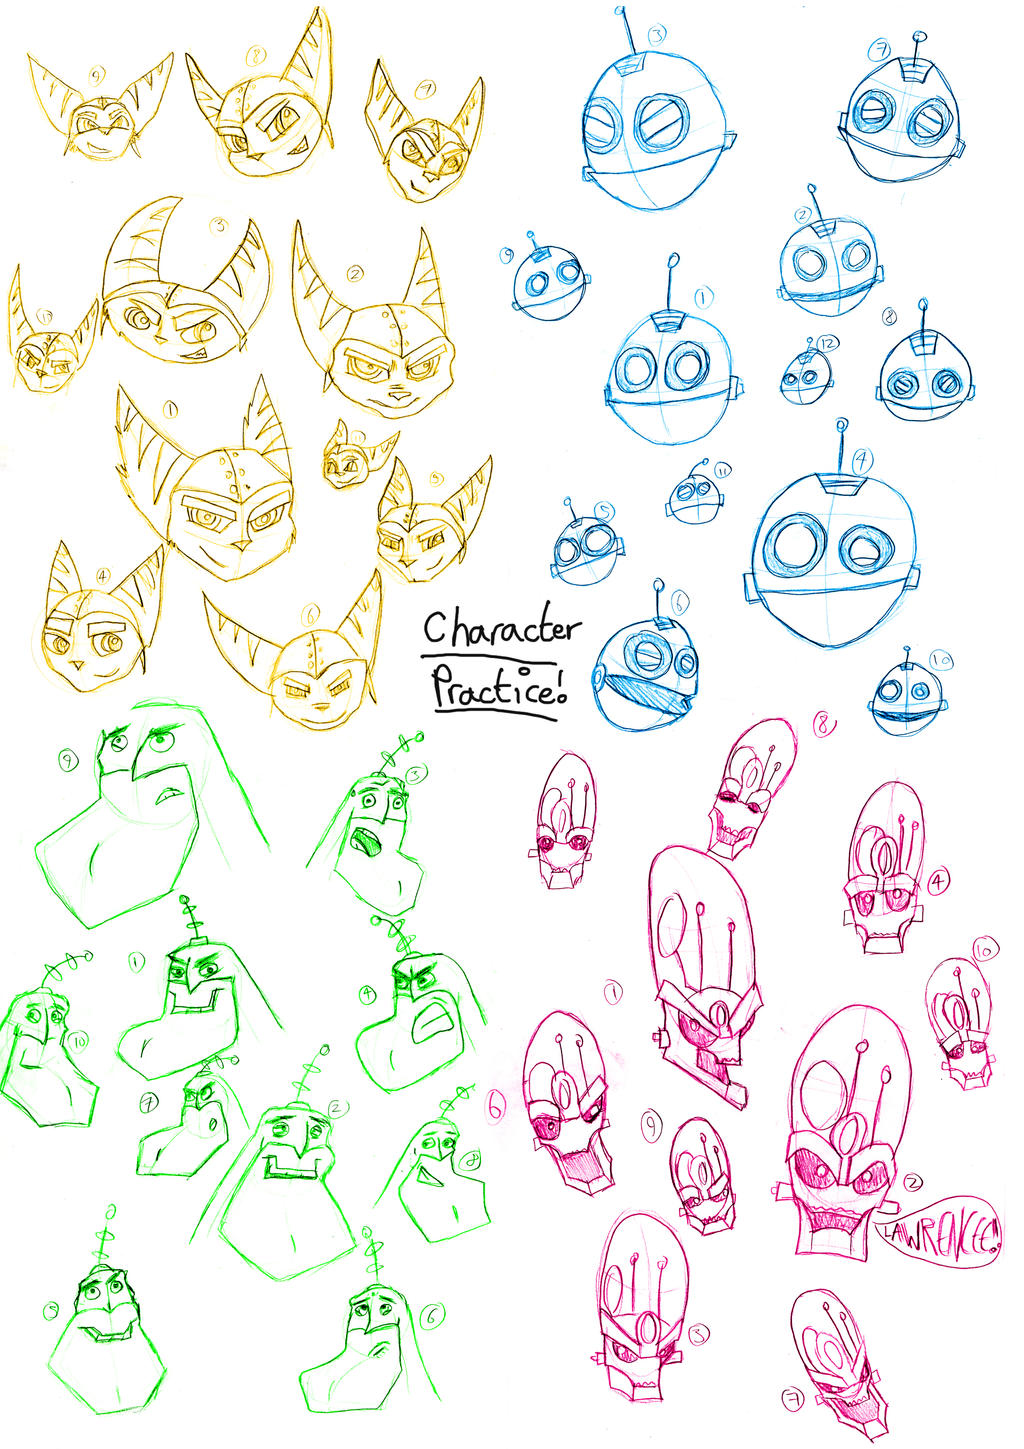 Character Design Practice : R c character design practice by sonicwindartist on